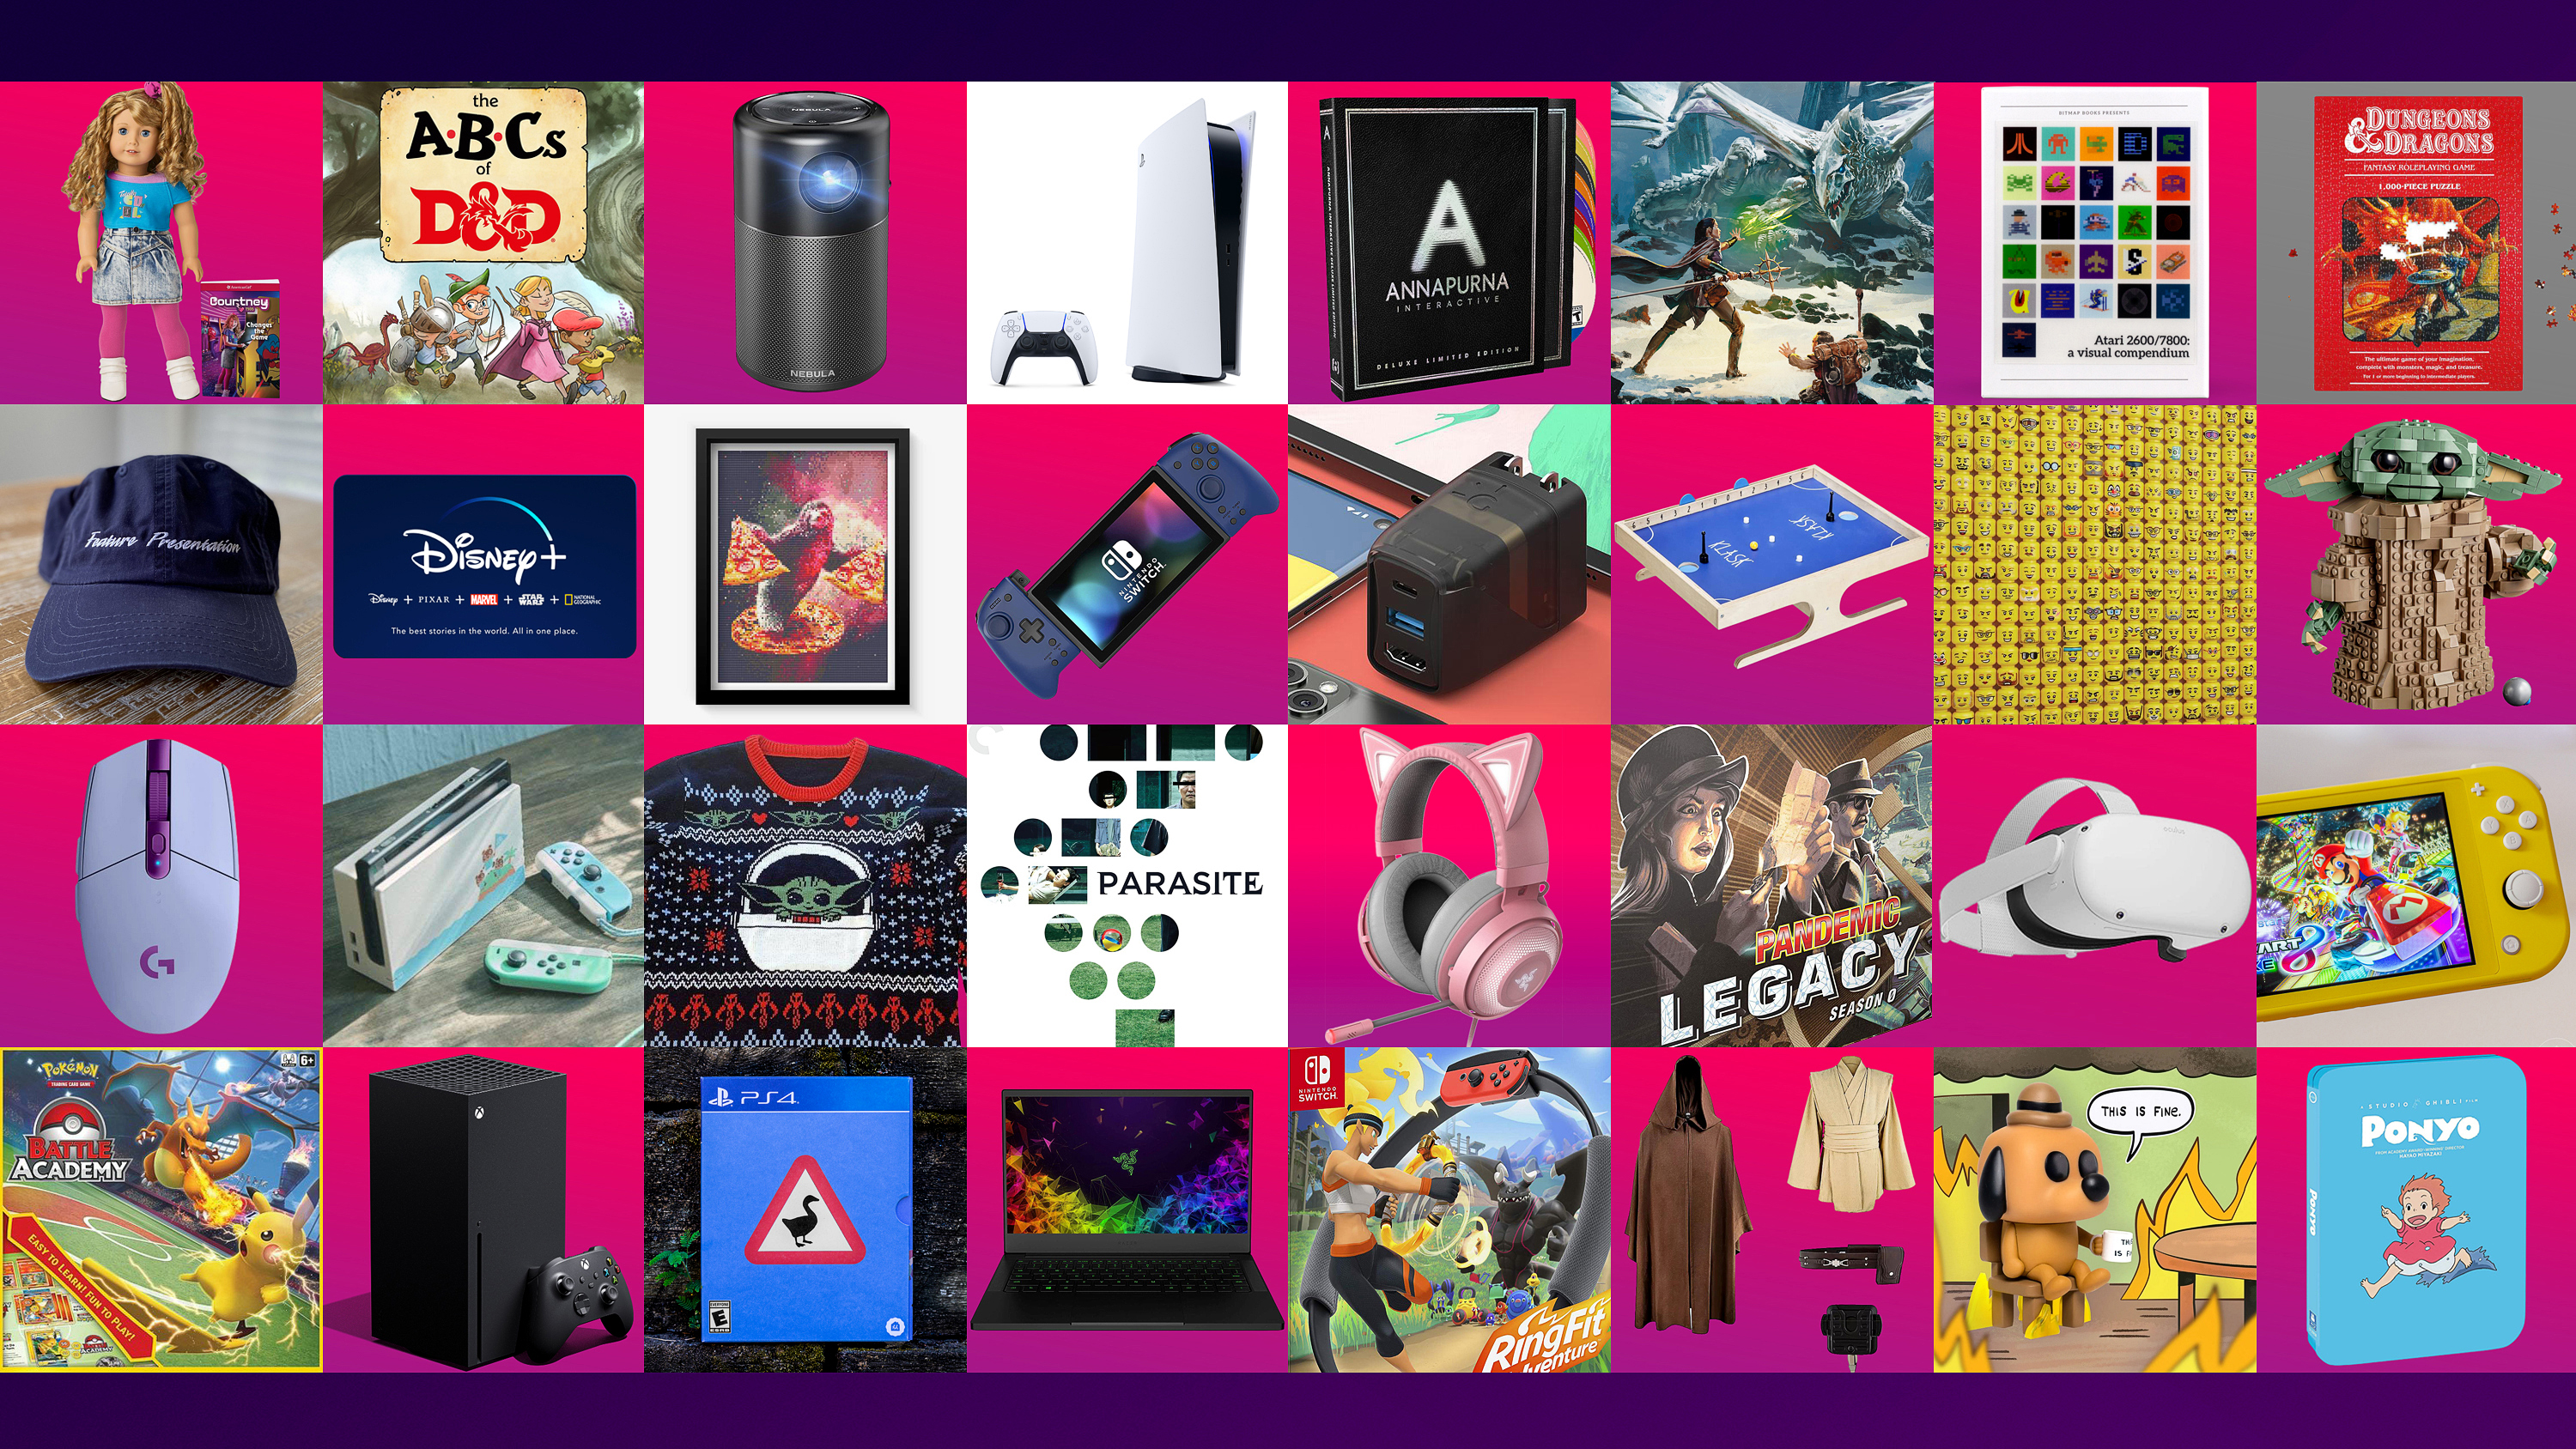 A composite image of products featured in Polygon's holiday gift guide